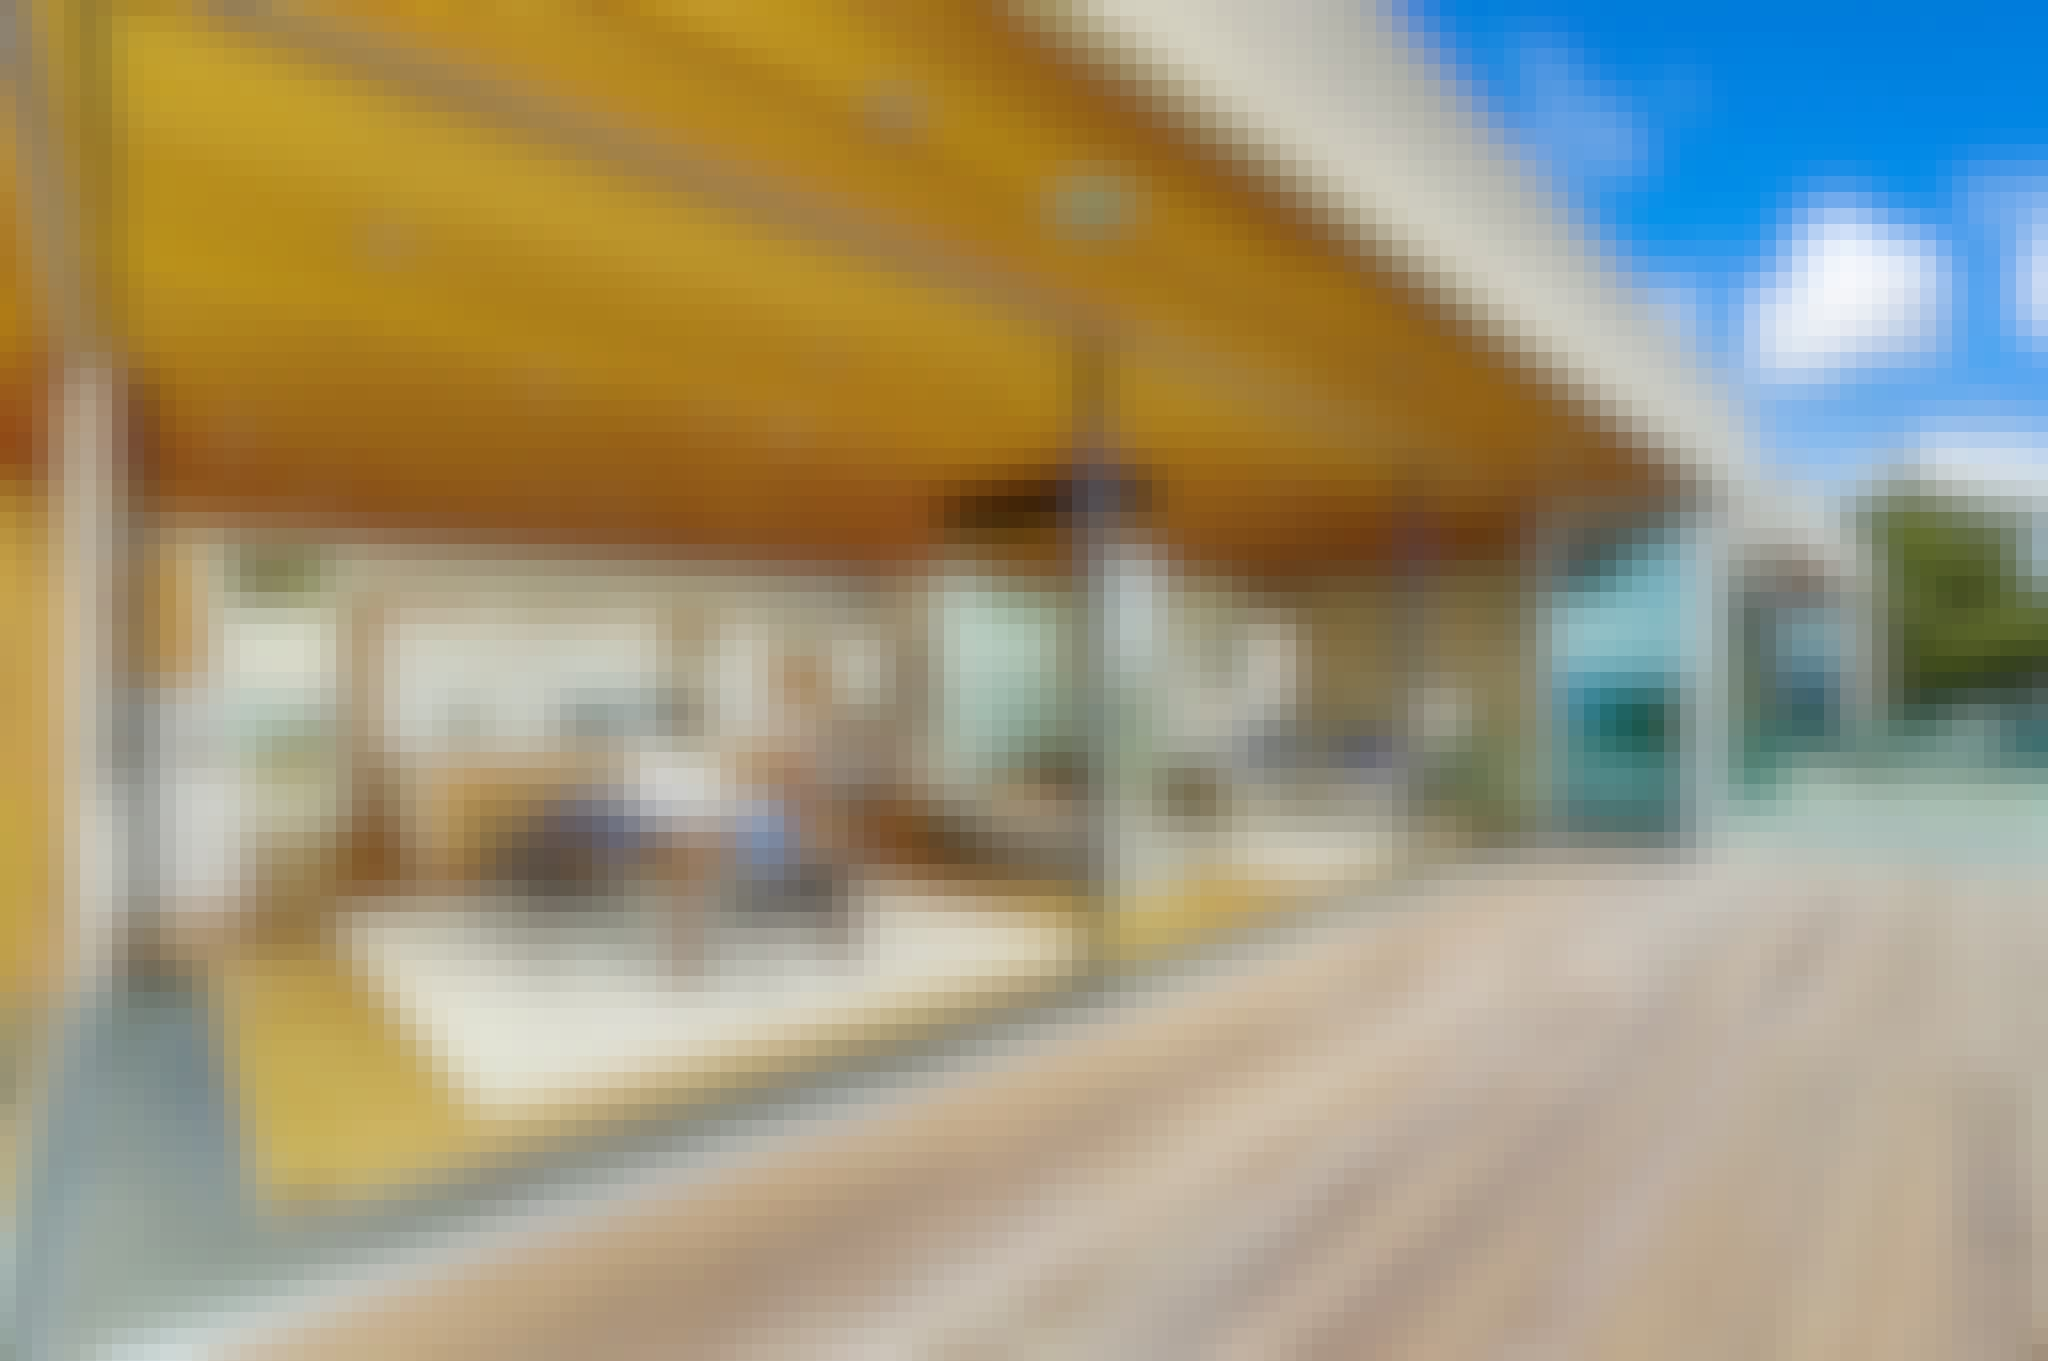 residential sliding glass wall systems